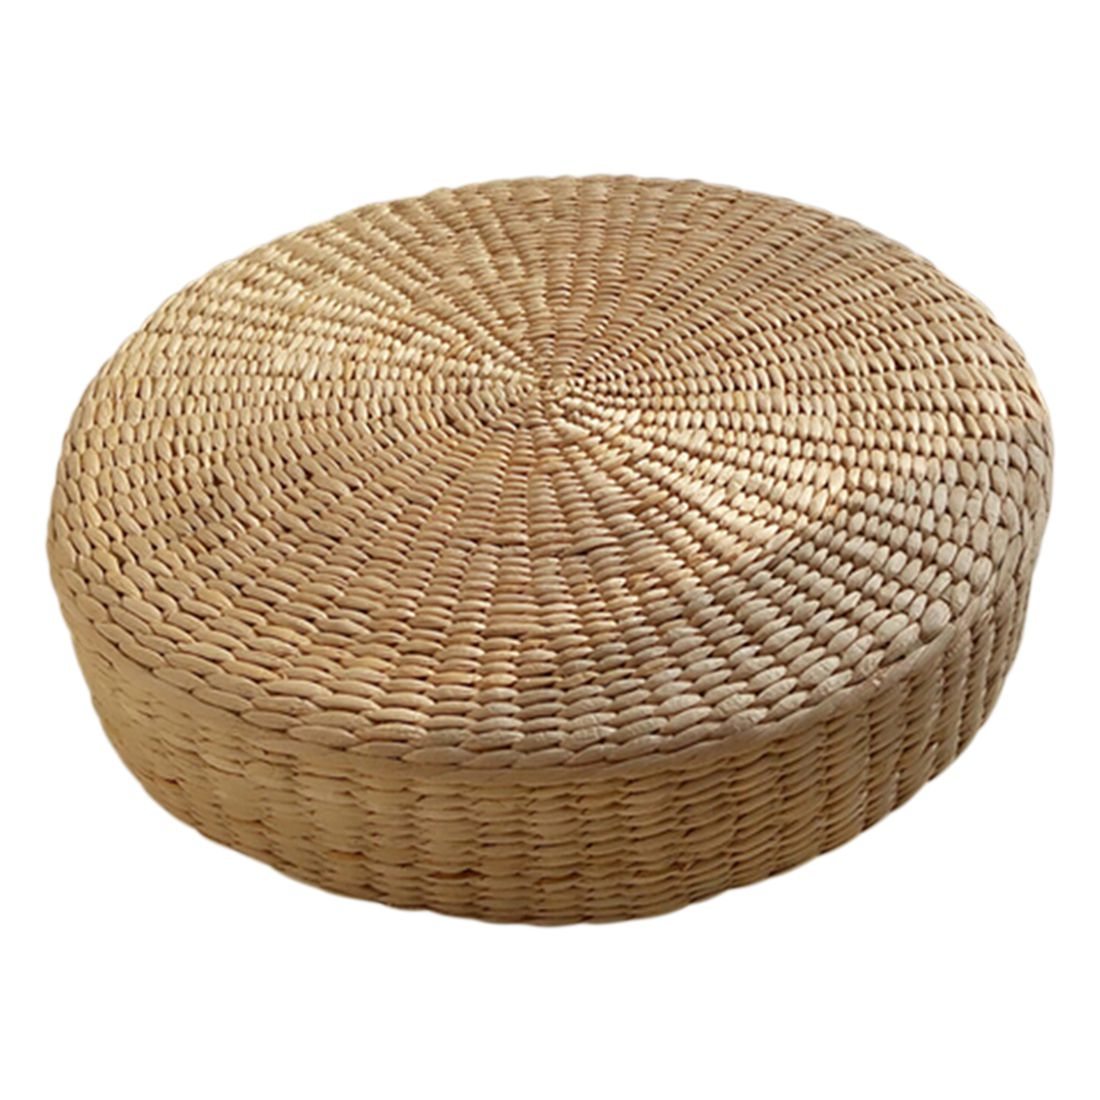 HOT SALE 40cm Tatami Cushion Round Straw Weave Handmade Pillow Floor Yoga Chair Seat Mat